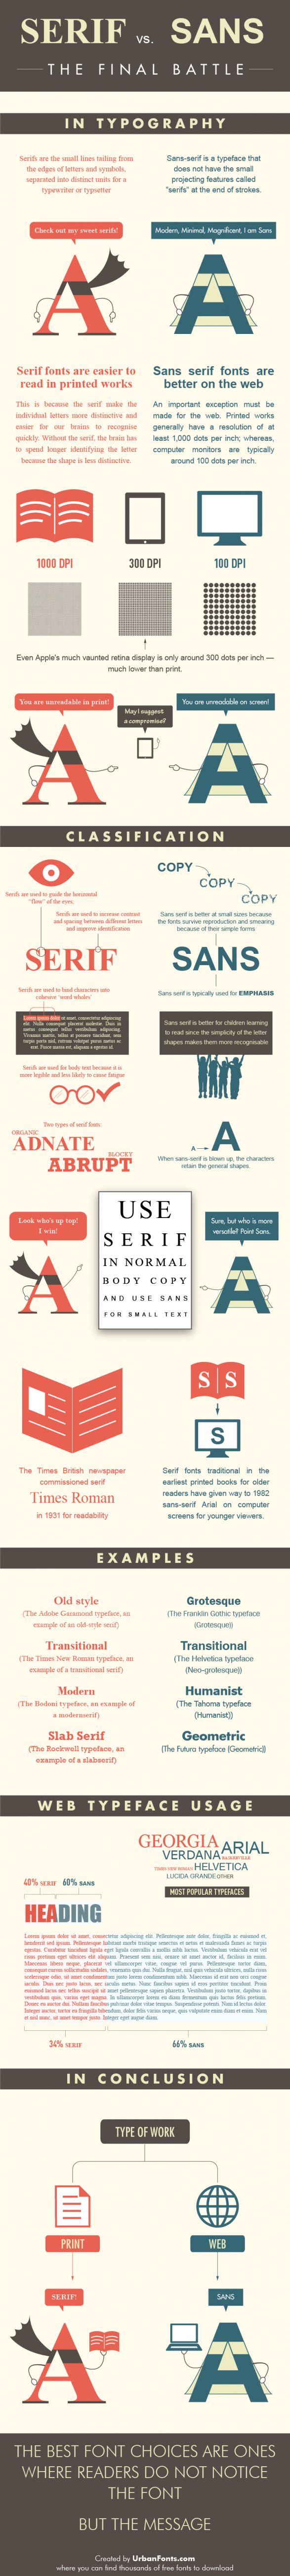 Serif Vs Sans: The Final Battle  Font On Resume